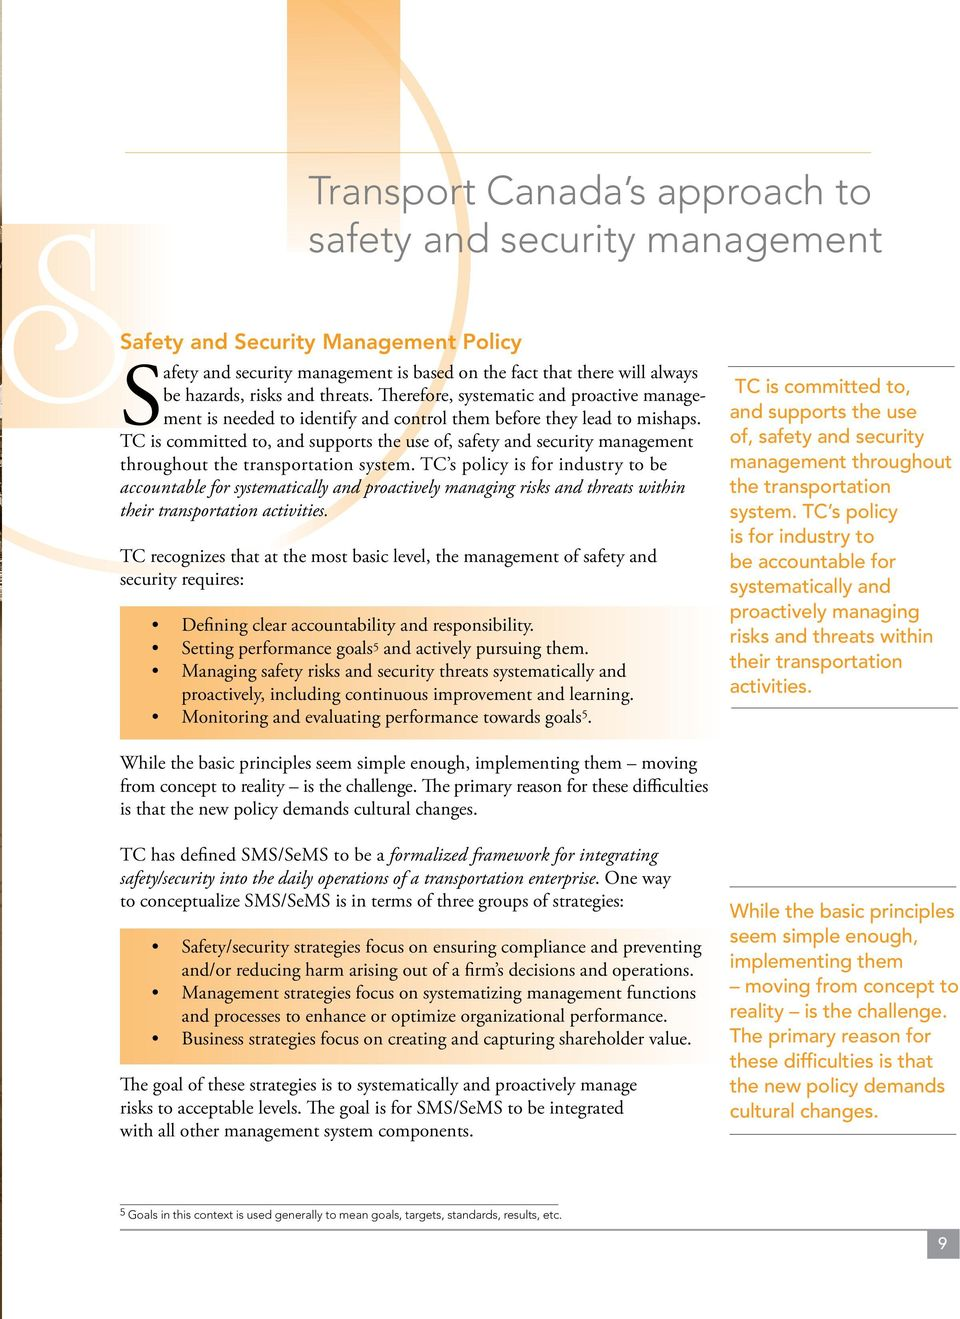 TC is committed to, and supports the use of, safety and security management throughout the transportation system.